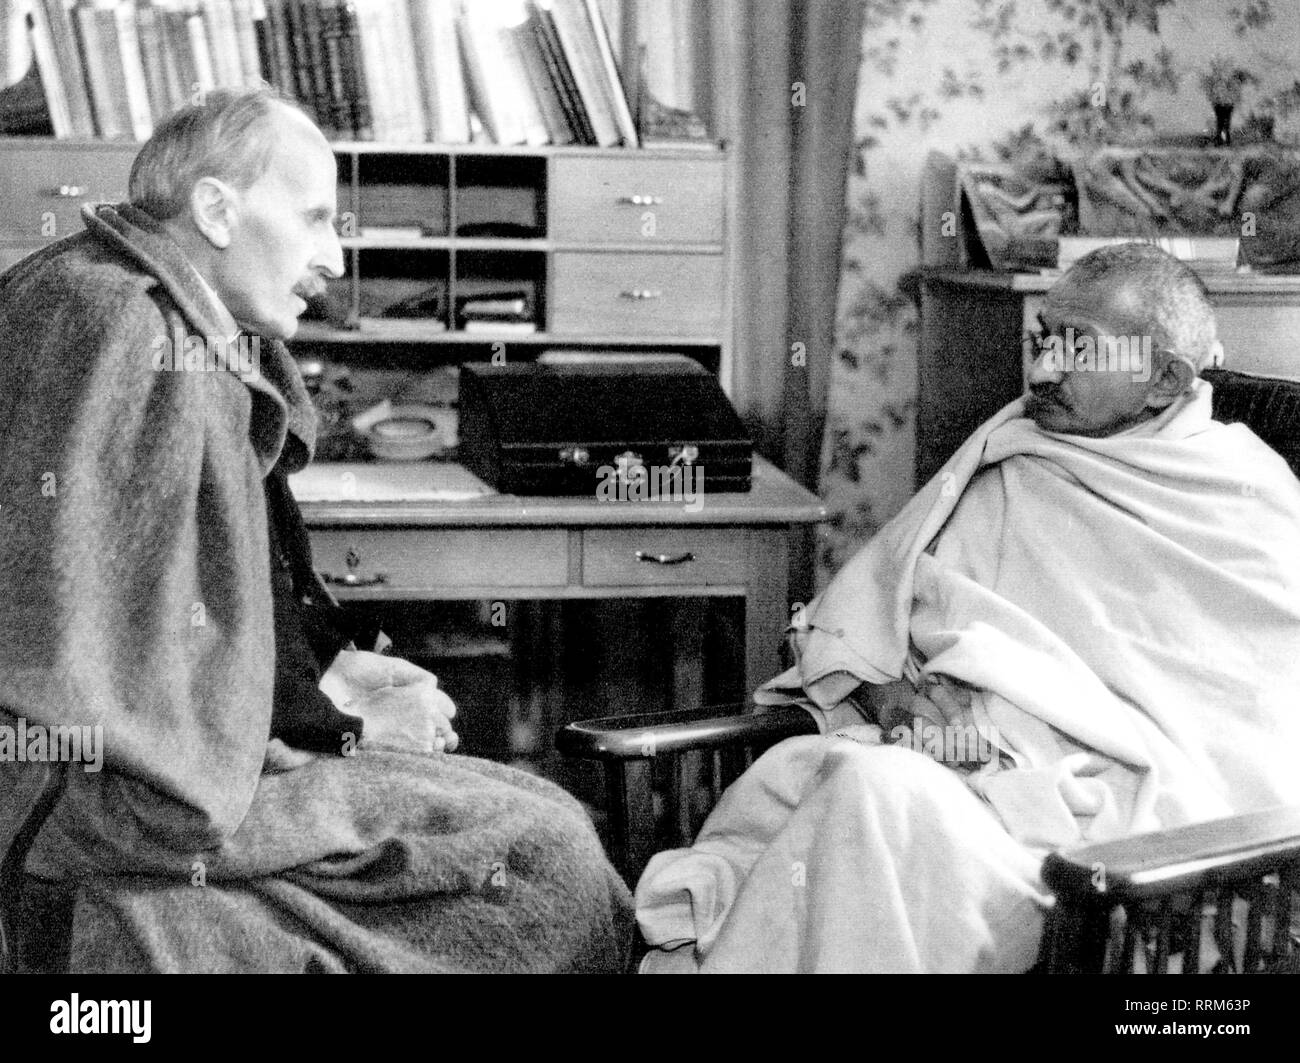 Gandhi, Mohandas Karamchand, Mahatma, 2.10.1869 - 30.1.1948, Indian politician, during conversation with Romain Rolland, Villeneuve, 10.12.1931, Additional-Rights-Clearance-Info-Not-Available - Stock Image